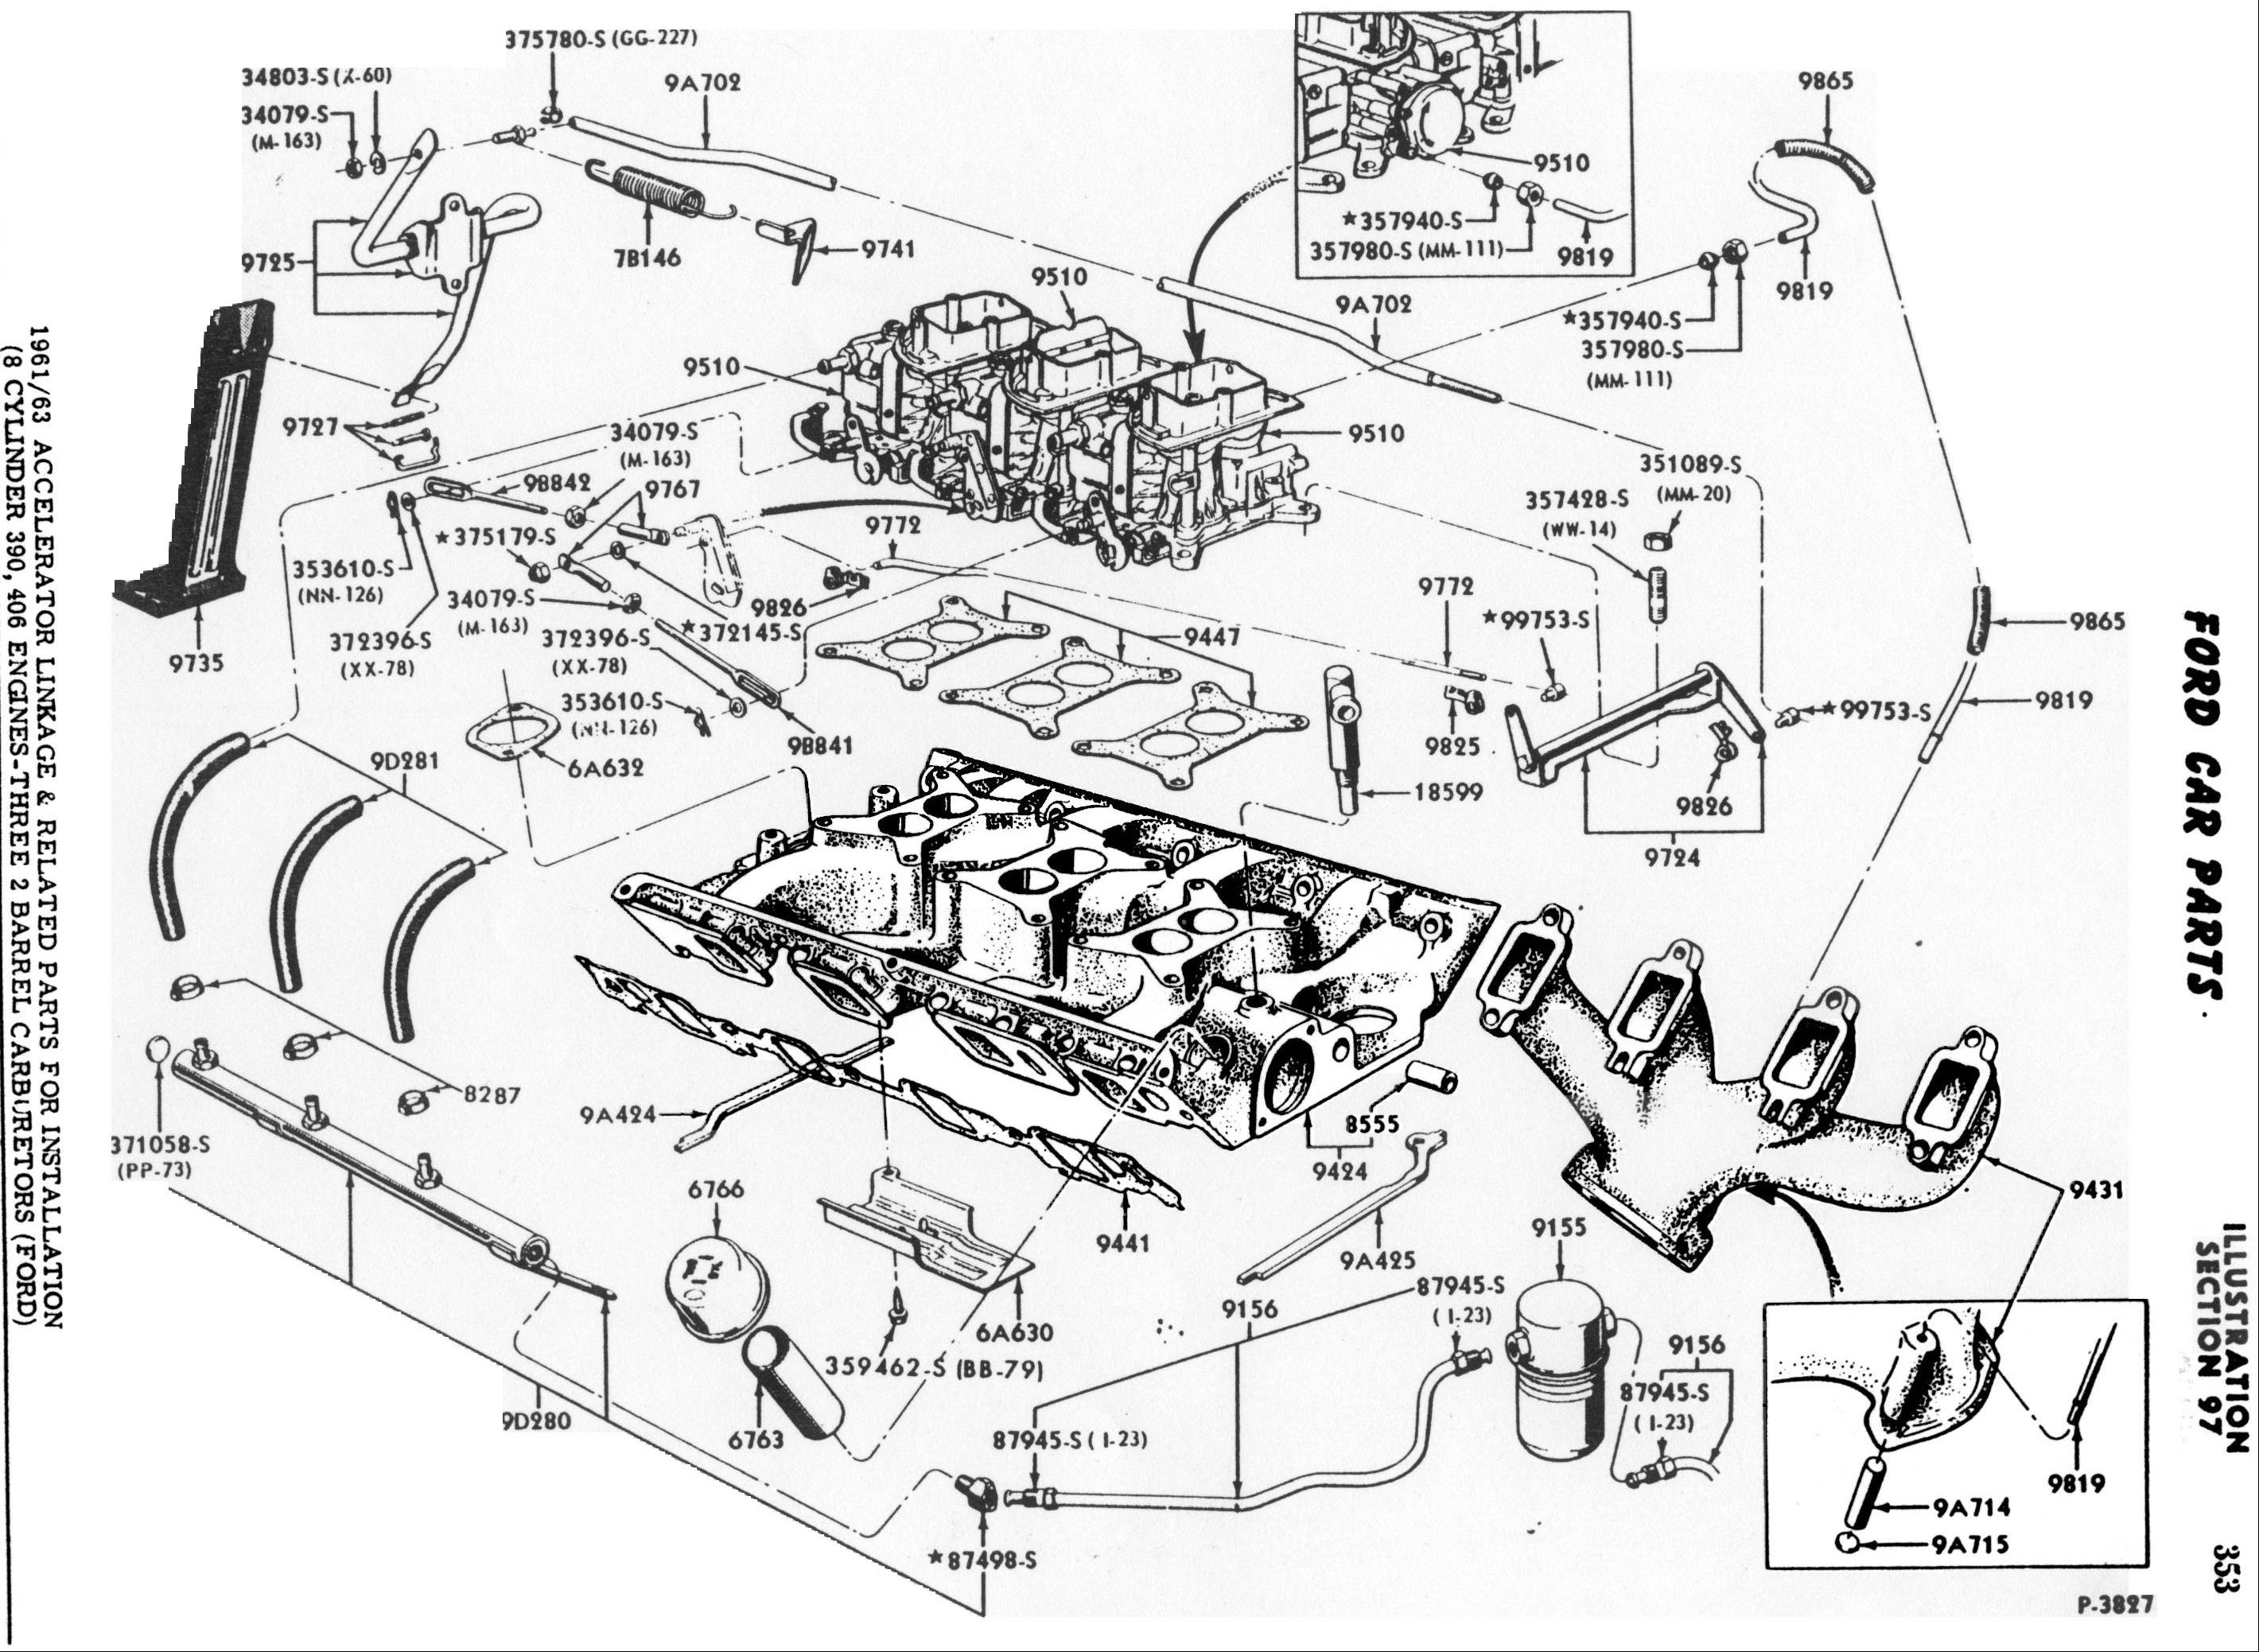 Transit engine diagram wiring schematic for a c heat a 1984 f250